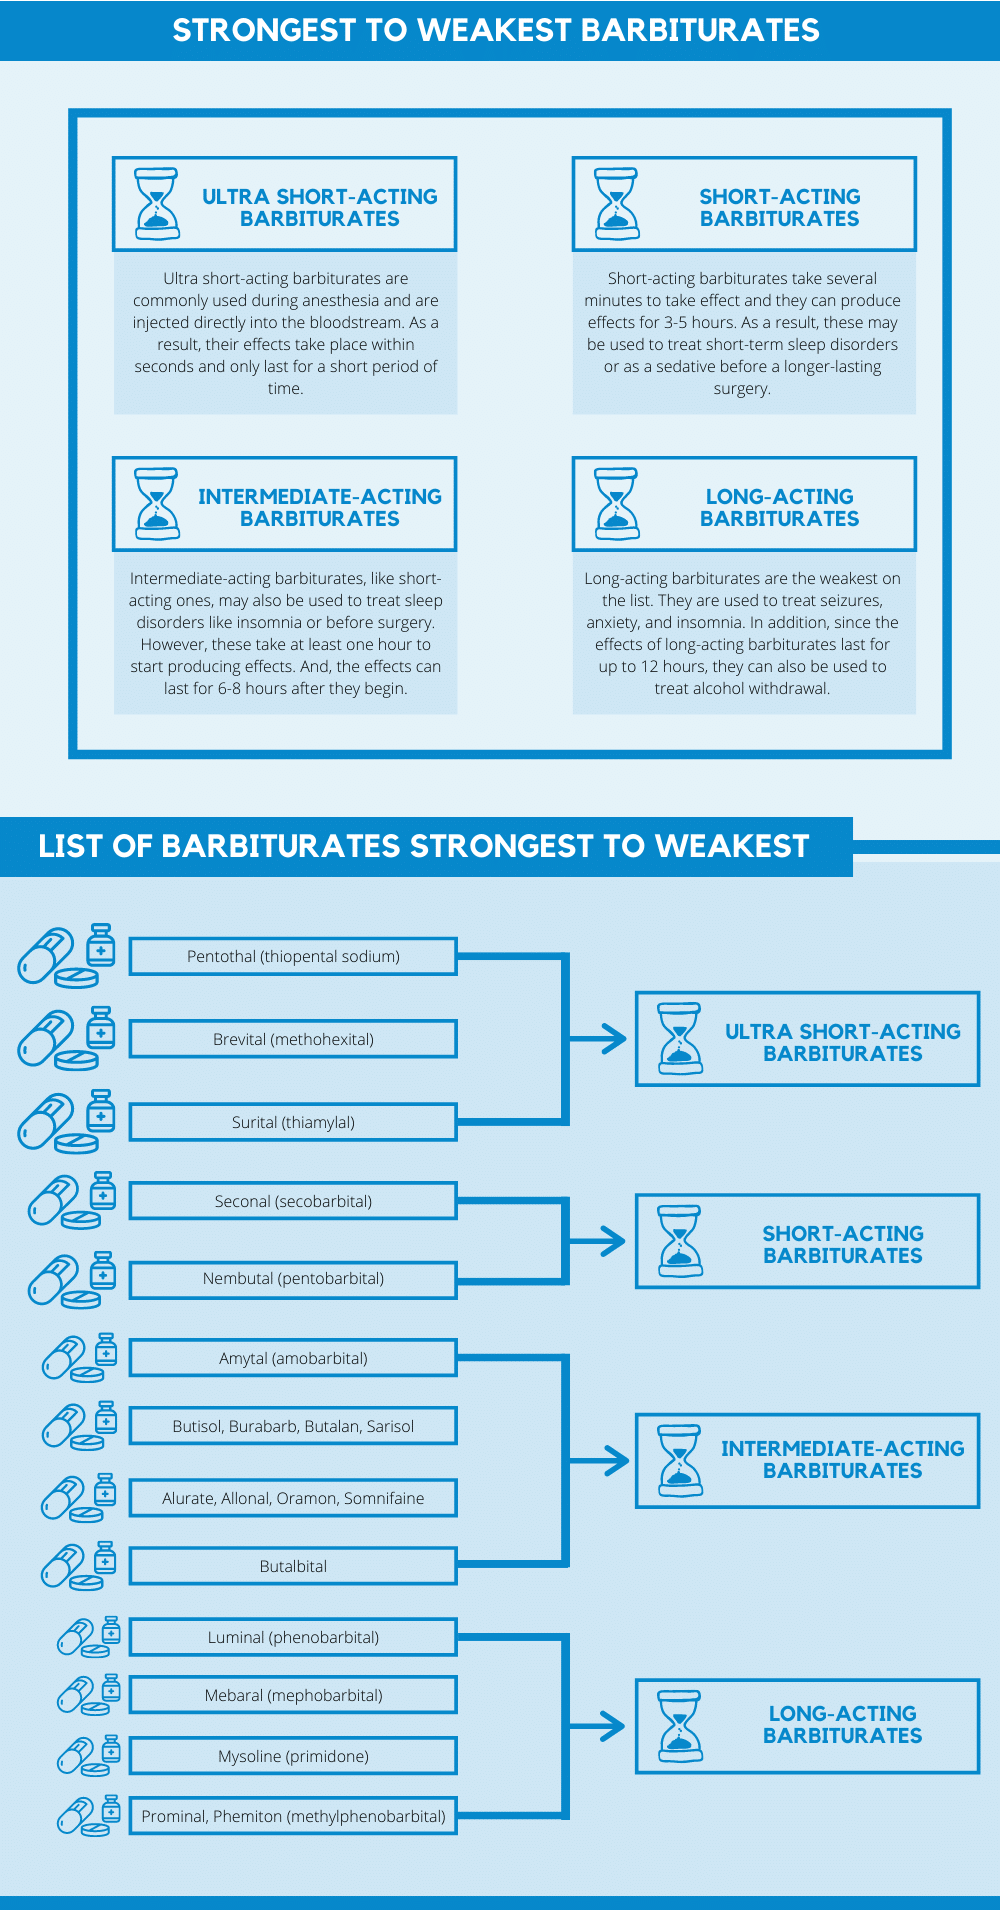 List of strongest to weakest barbiturates